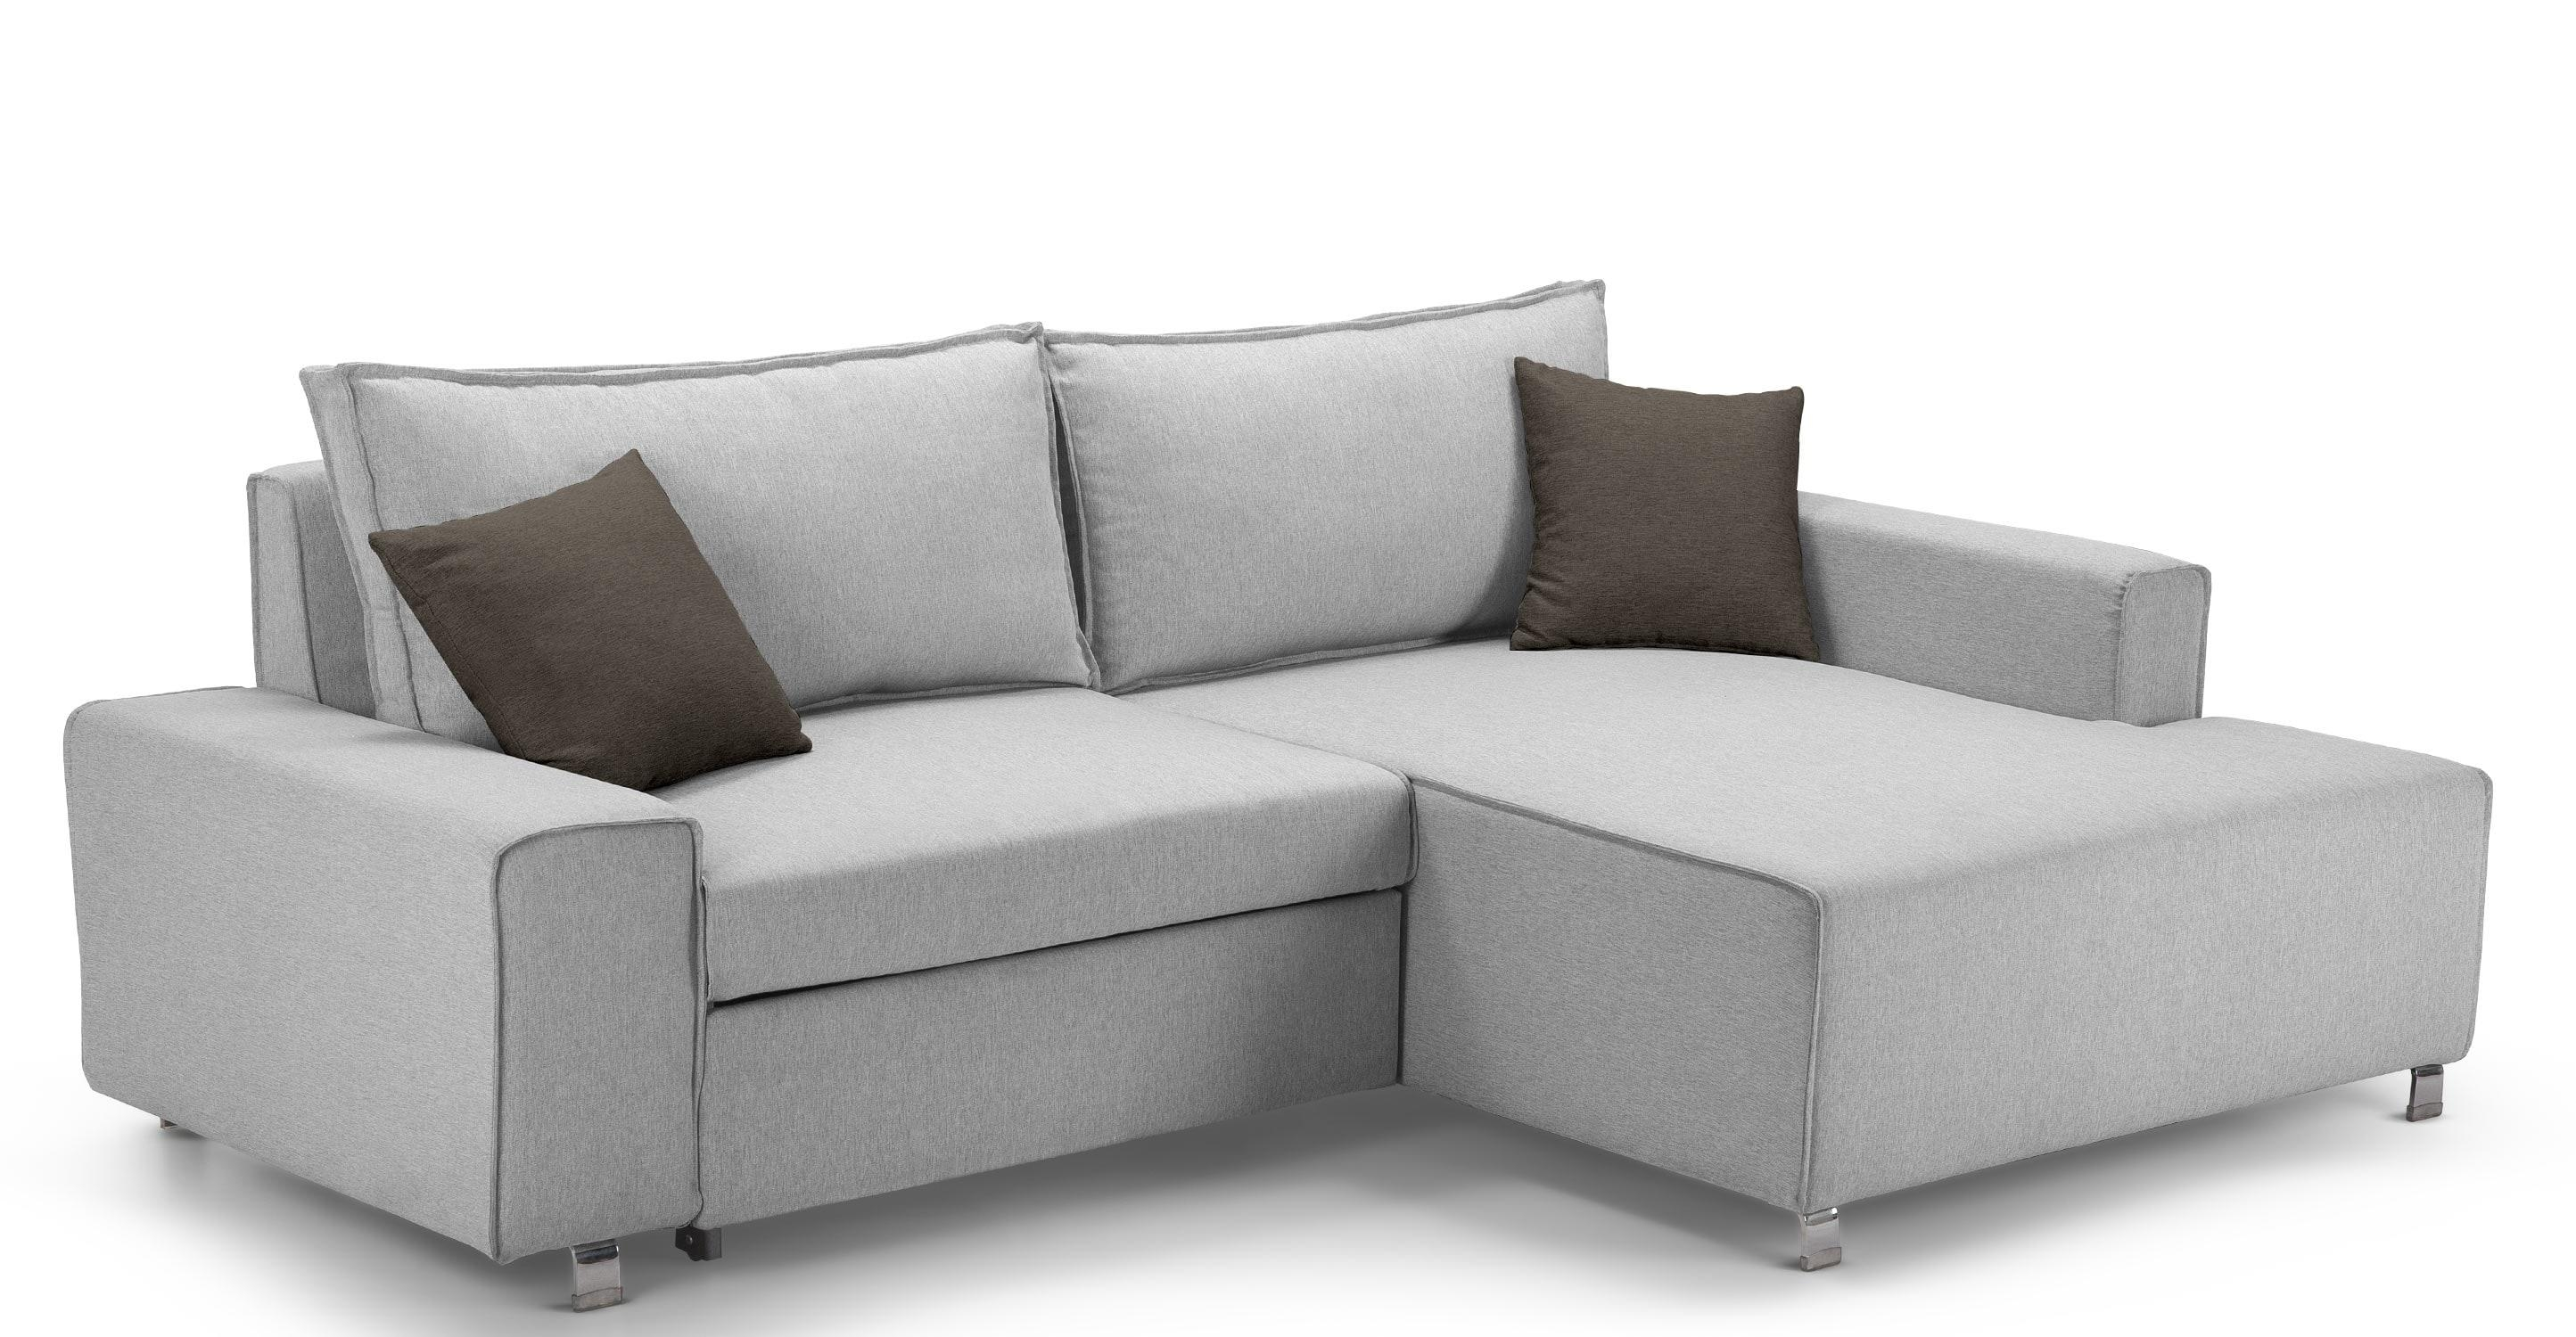 Sofas Center : Isabelle Corner Sofabed Cornerfa Beds With Storage In Cheap Corner Sofa Beds (View 20 of 20)